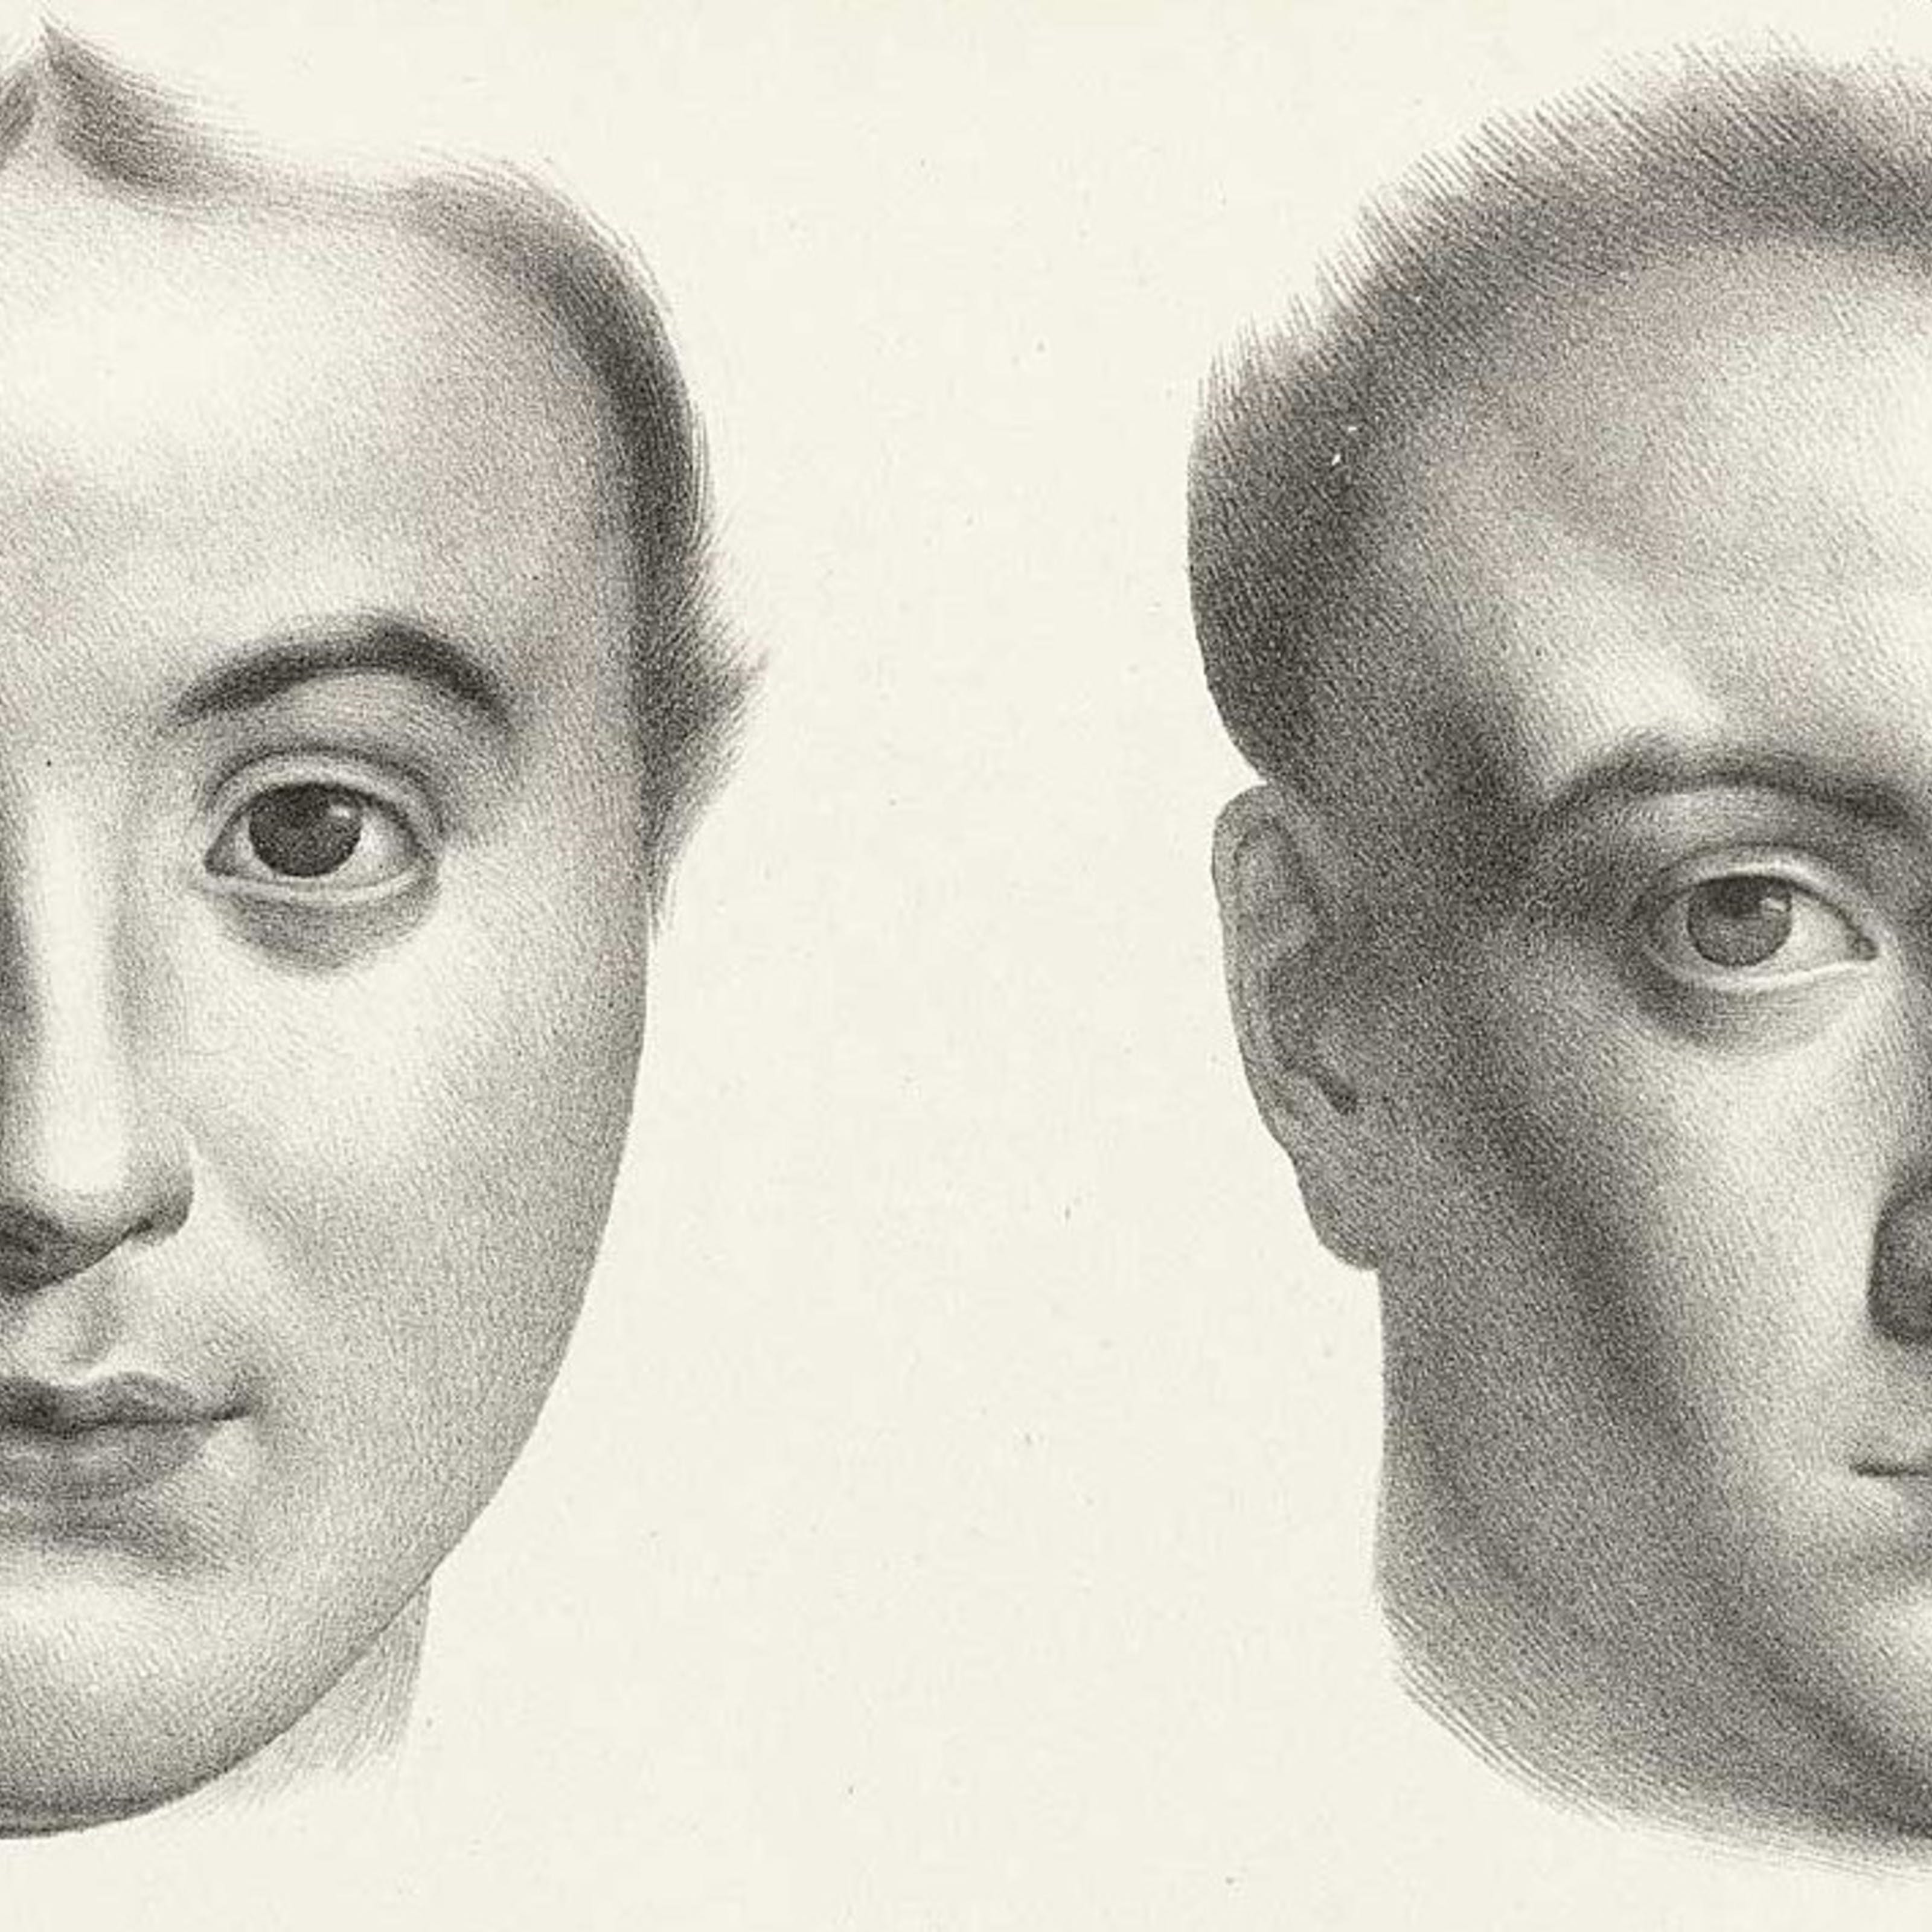 Black and white engraving of two women's differently shaped heads.